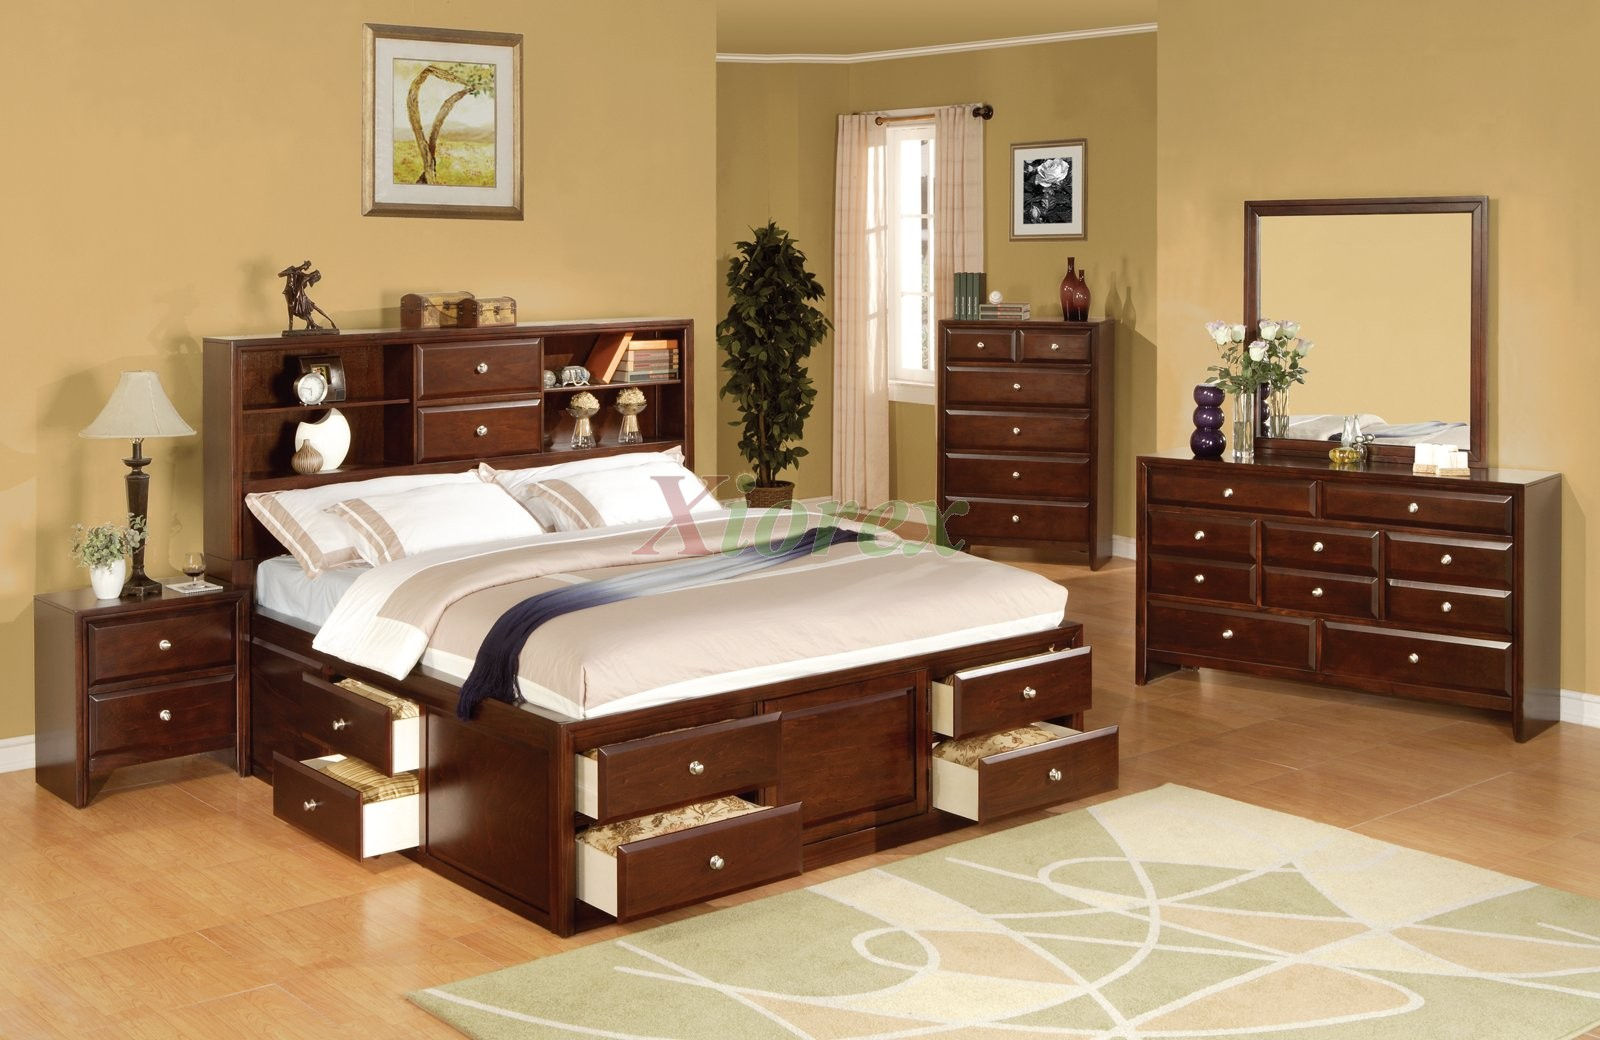 Bookcase Bedroom Furniture Bookcase And Storage Bedroom Furniture Set 137 Xiorex